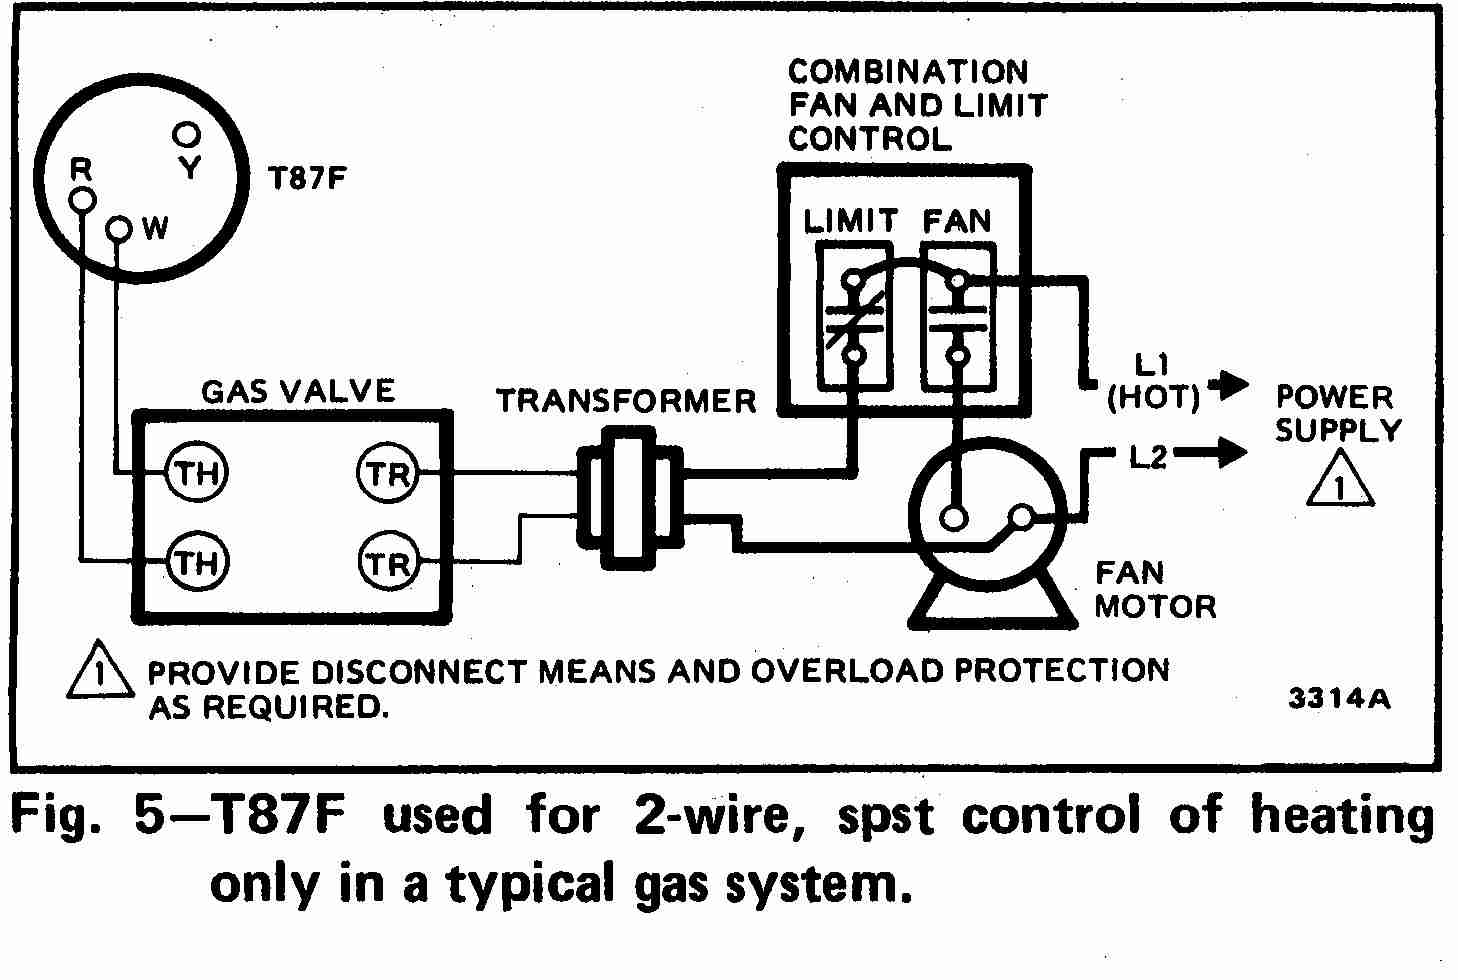 TT_T87F_0002_2Wg_DJF guide to wiring connections for room thermostats heating and air conditioning wiring diagrams at love-stories.co